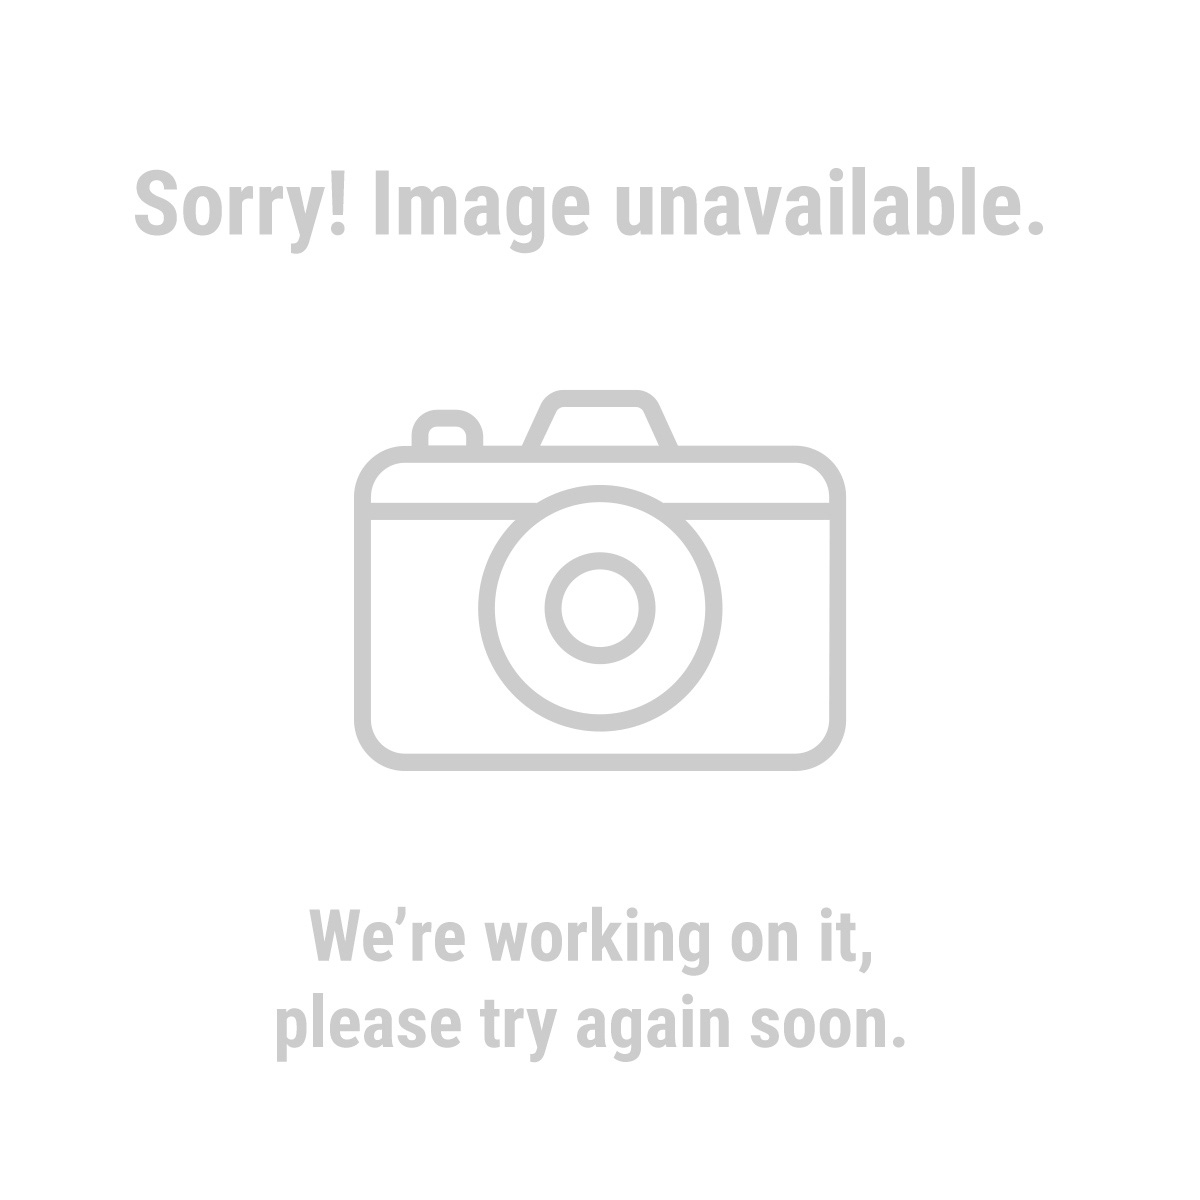 Harbor freight tools you own and enjoy tools equipment for Harbor freight blower motor